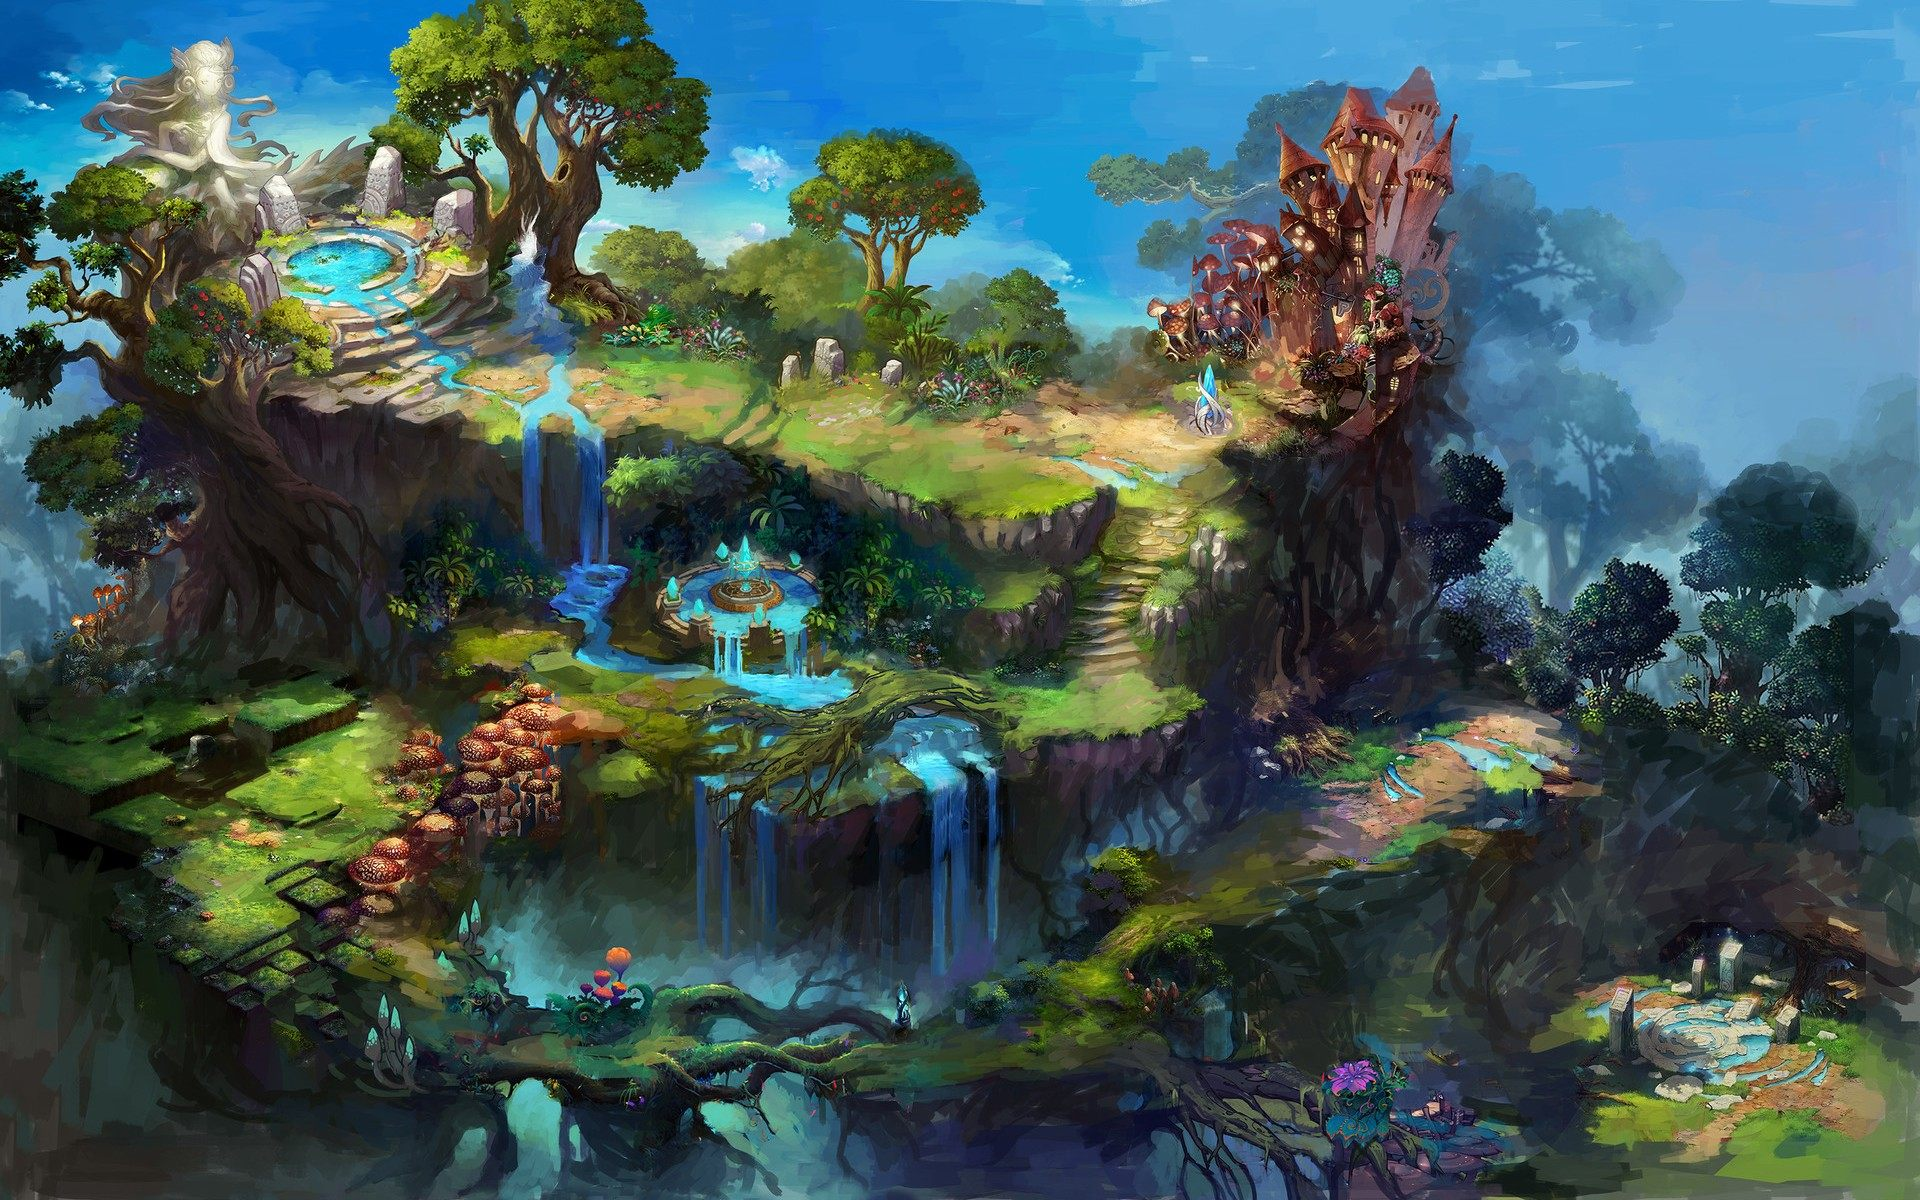 undiscovered paradise wallpapers undiscovered paradise